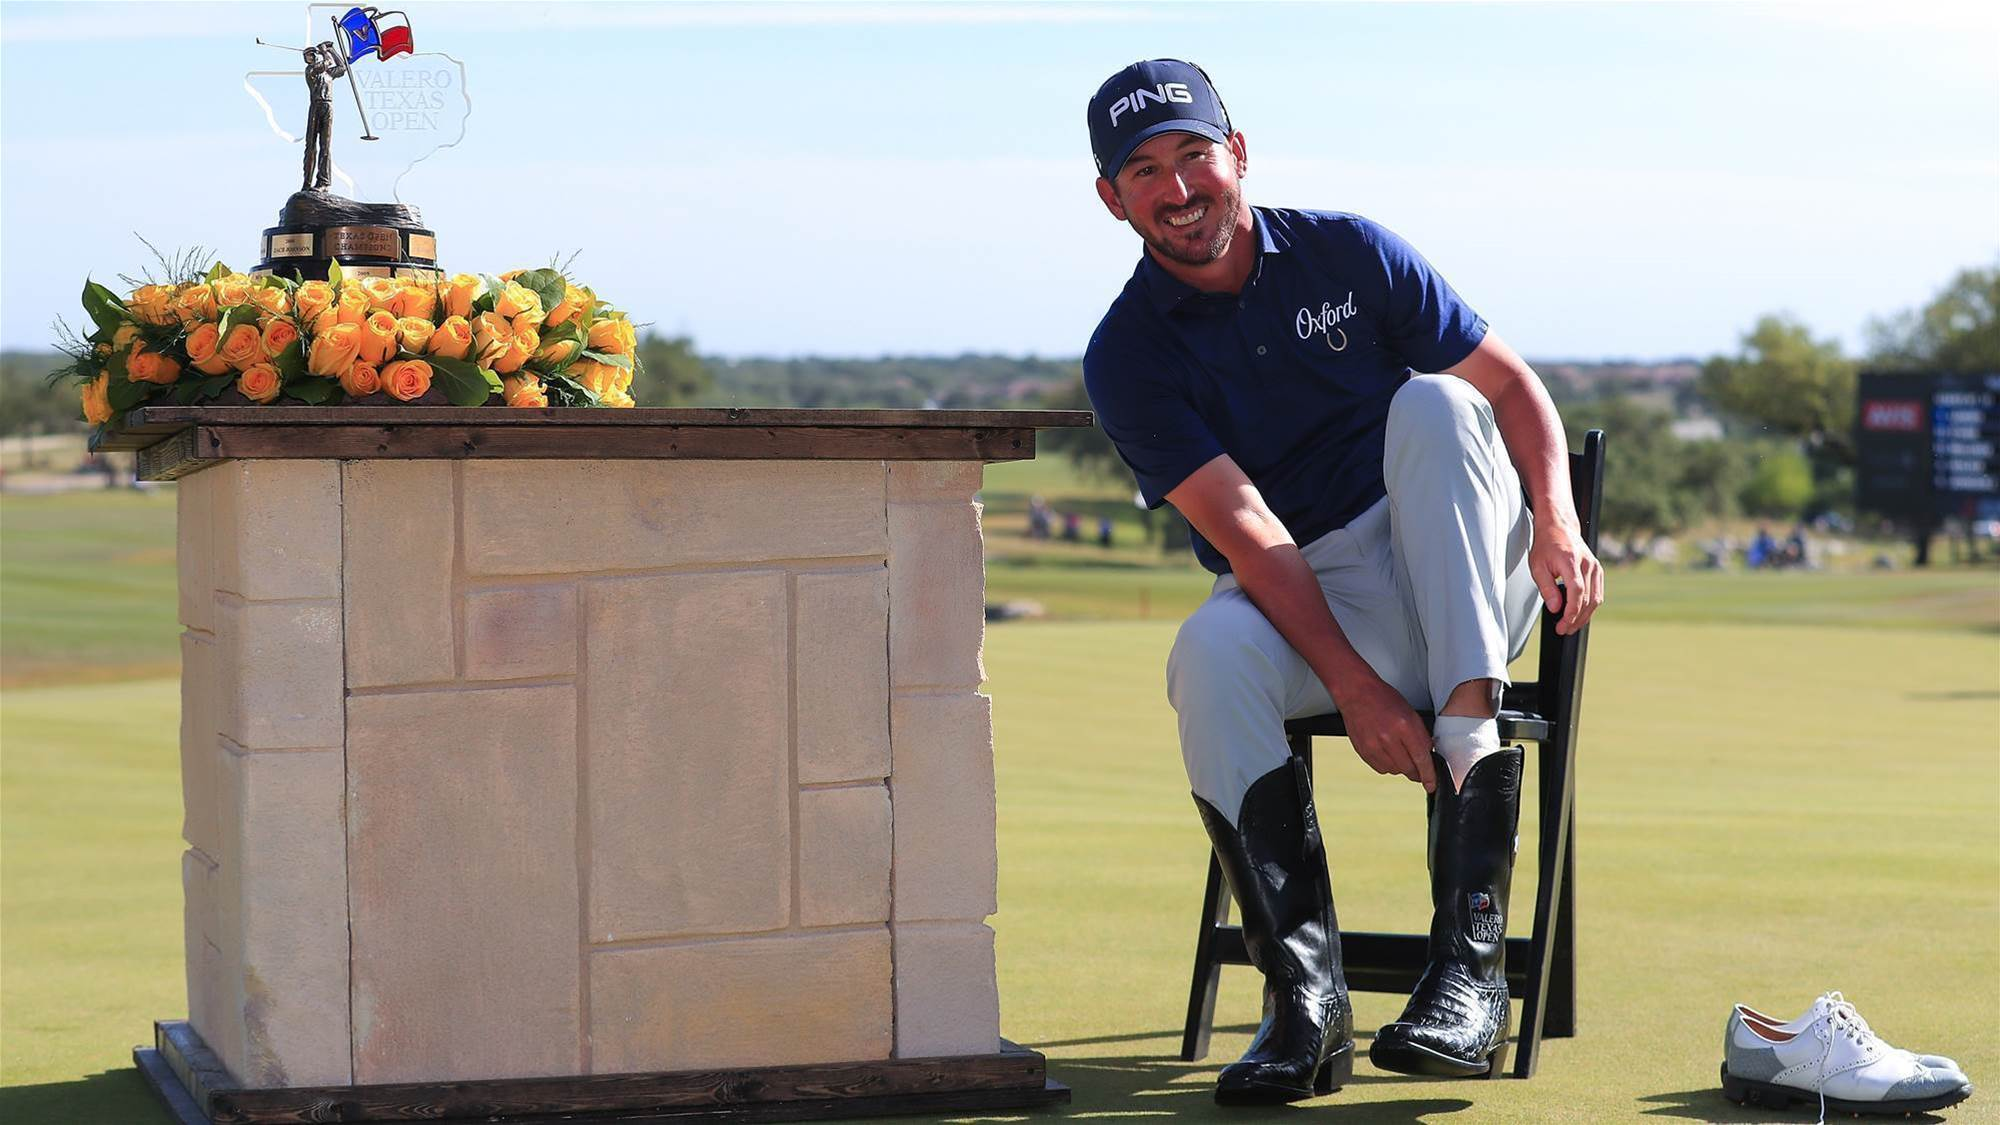 Landry wins Texas Open for first PGA title